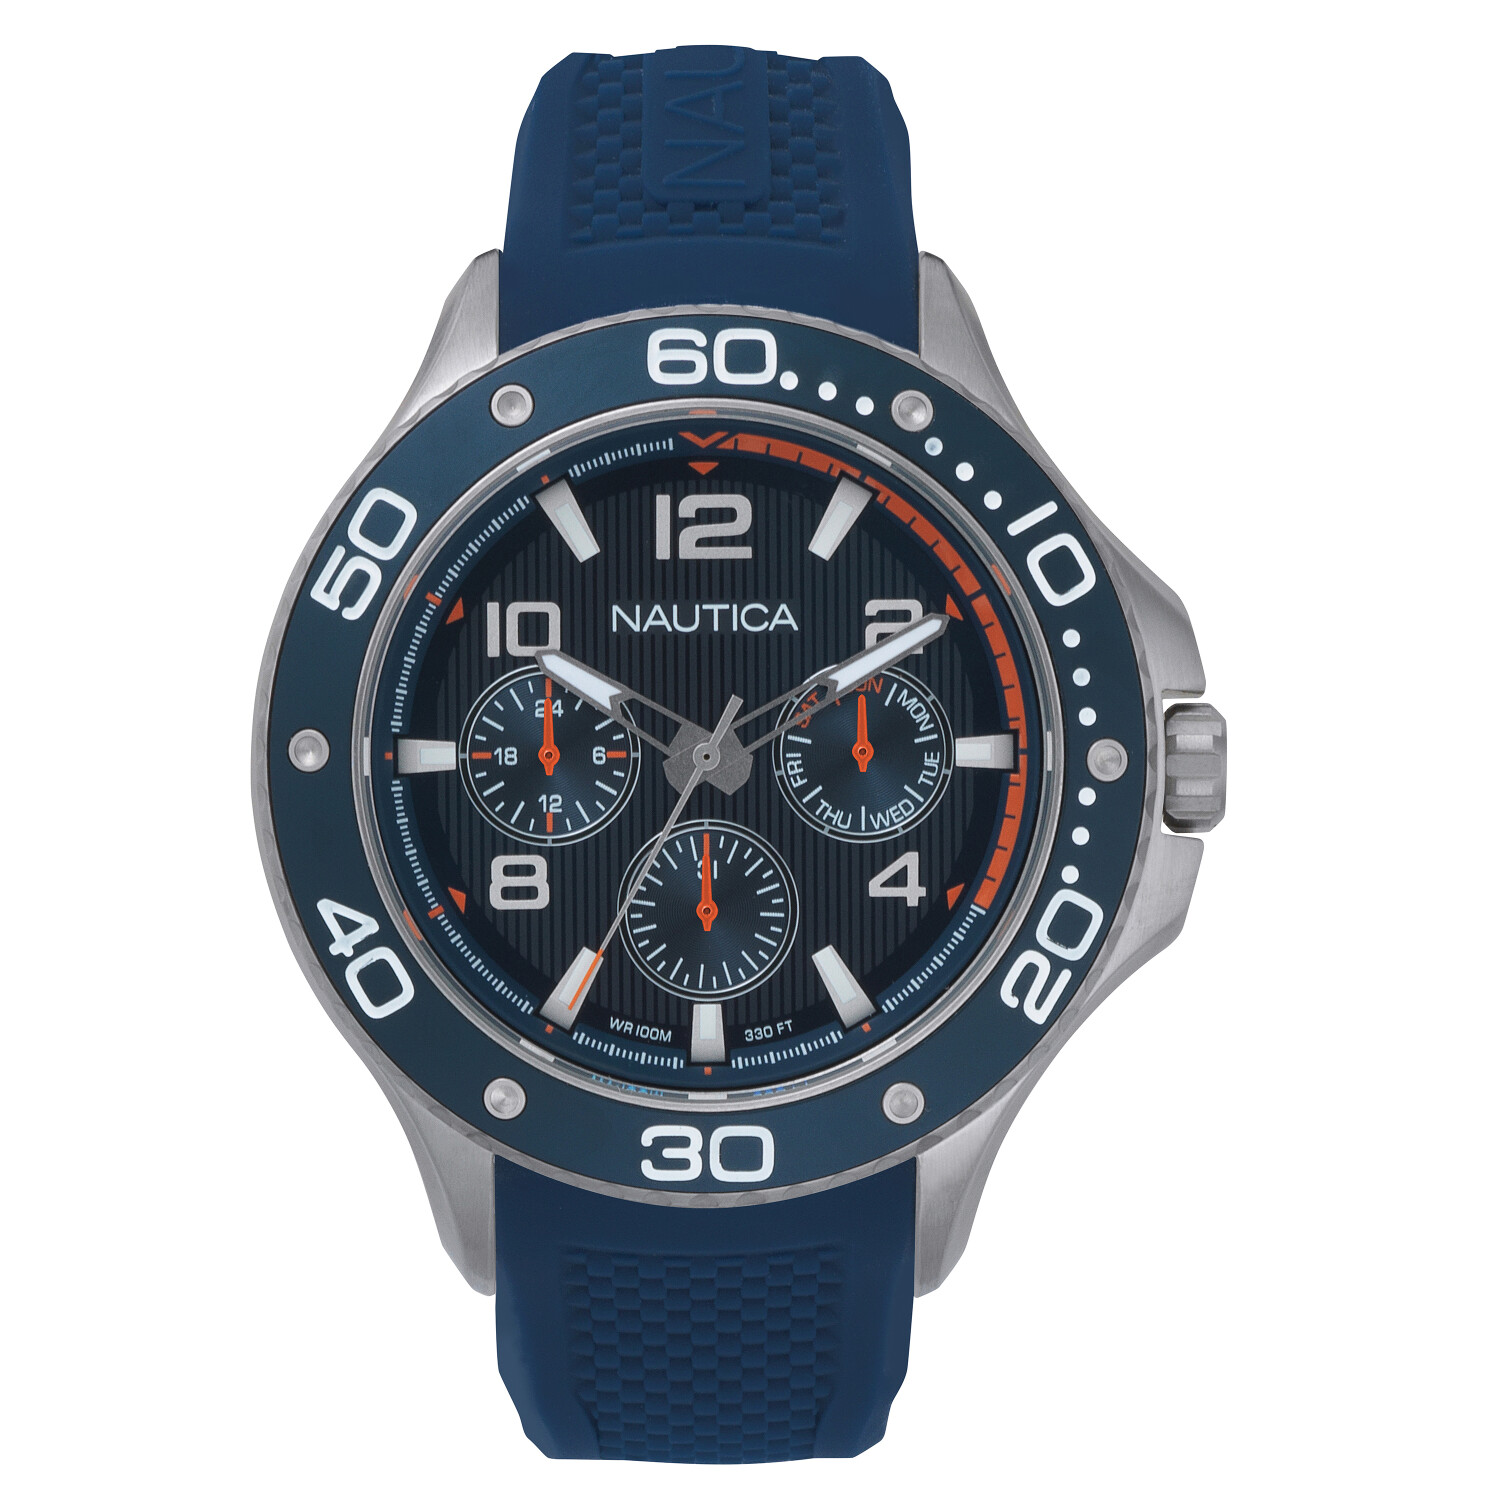 Nautica Watch NAPP25002 Pier, Analog, Water Resistant, Day/Date Display, Luminous Display, Navy Silicone Strap, Blue